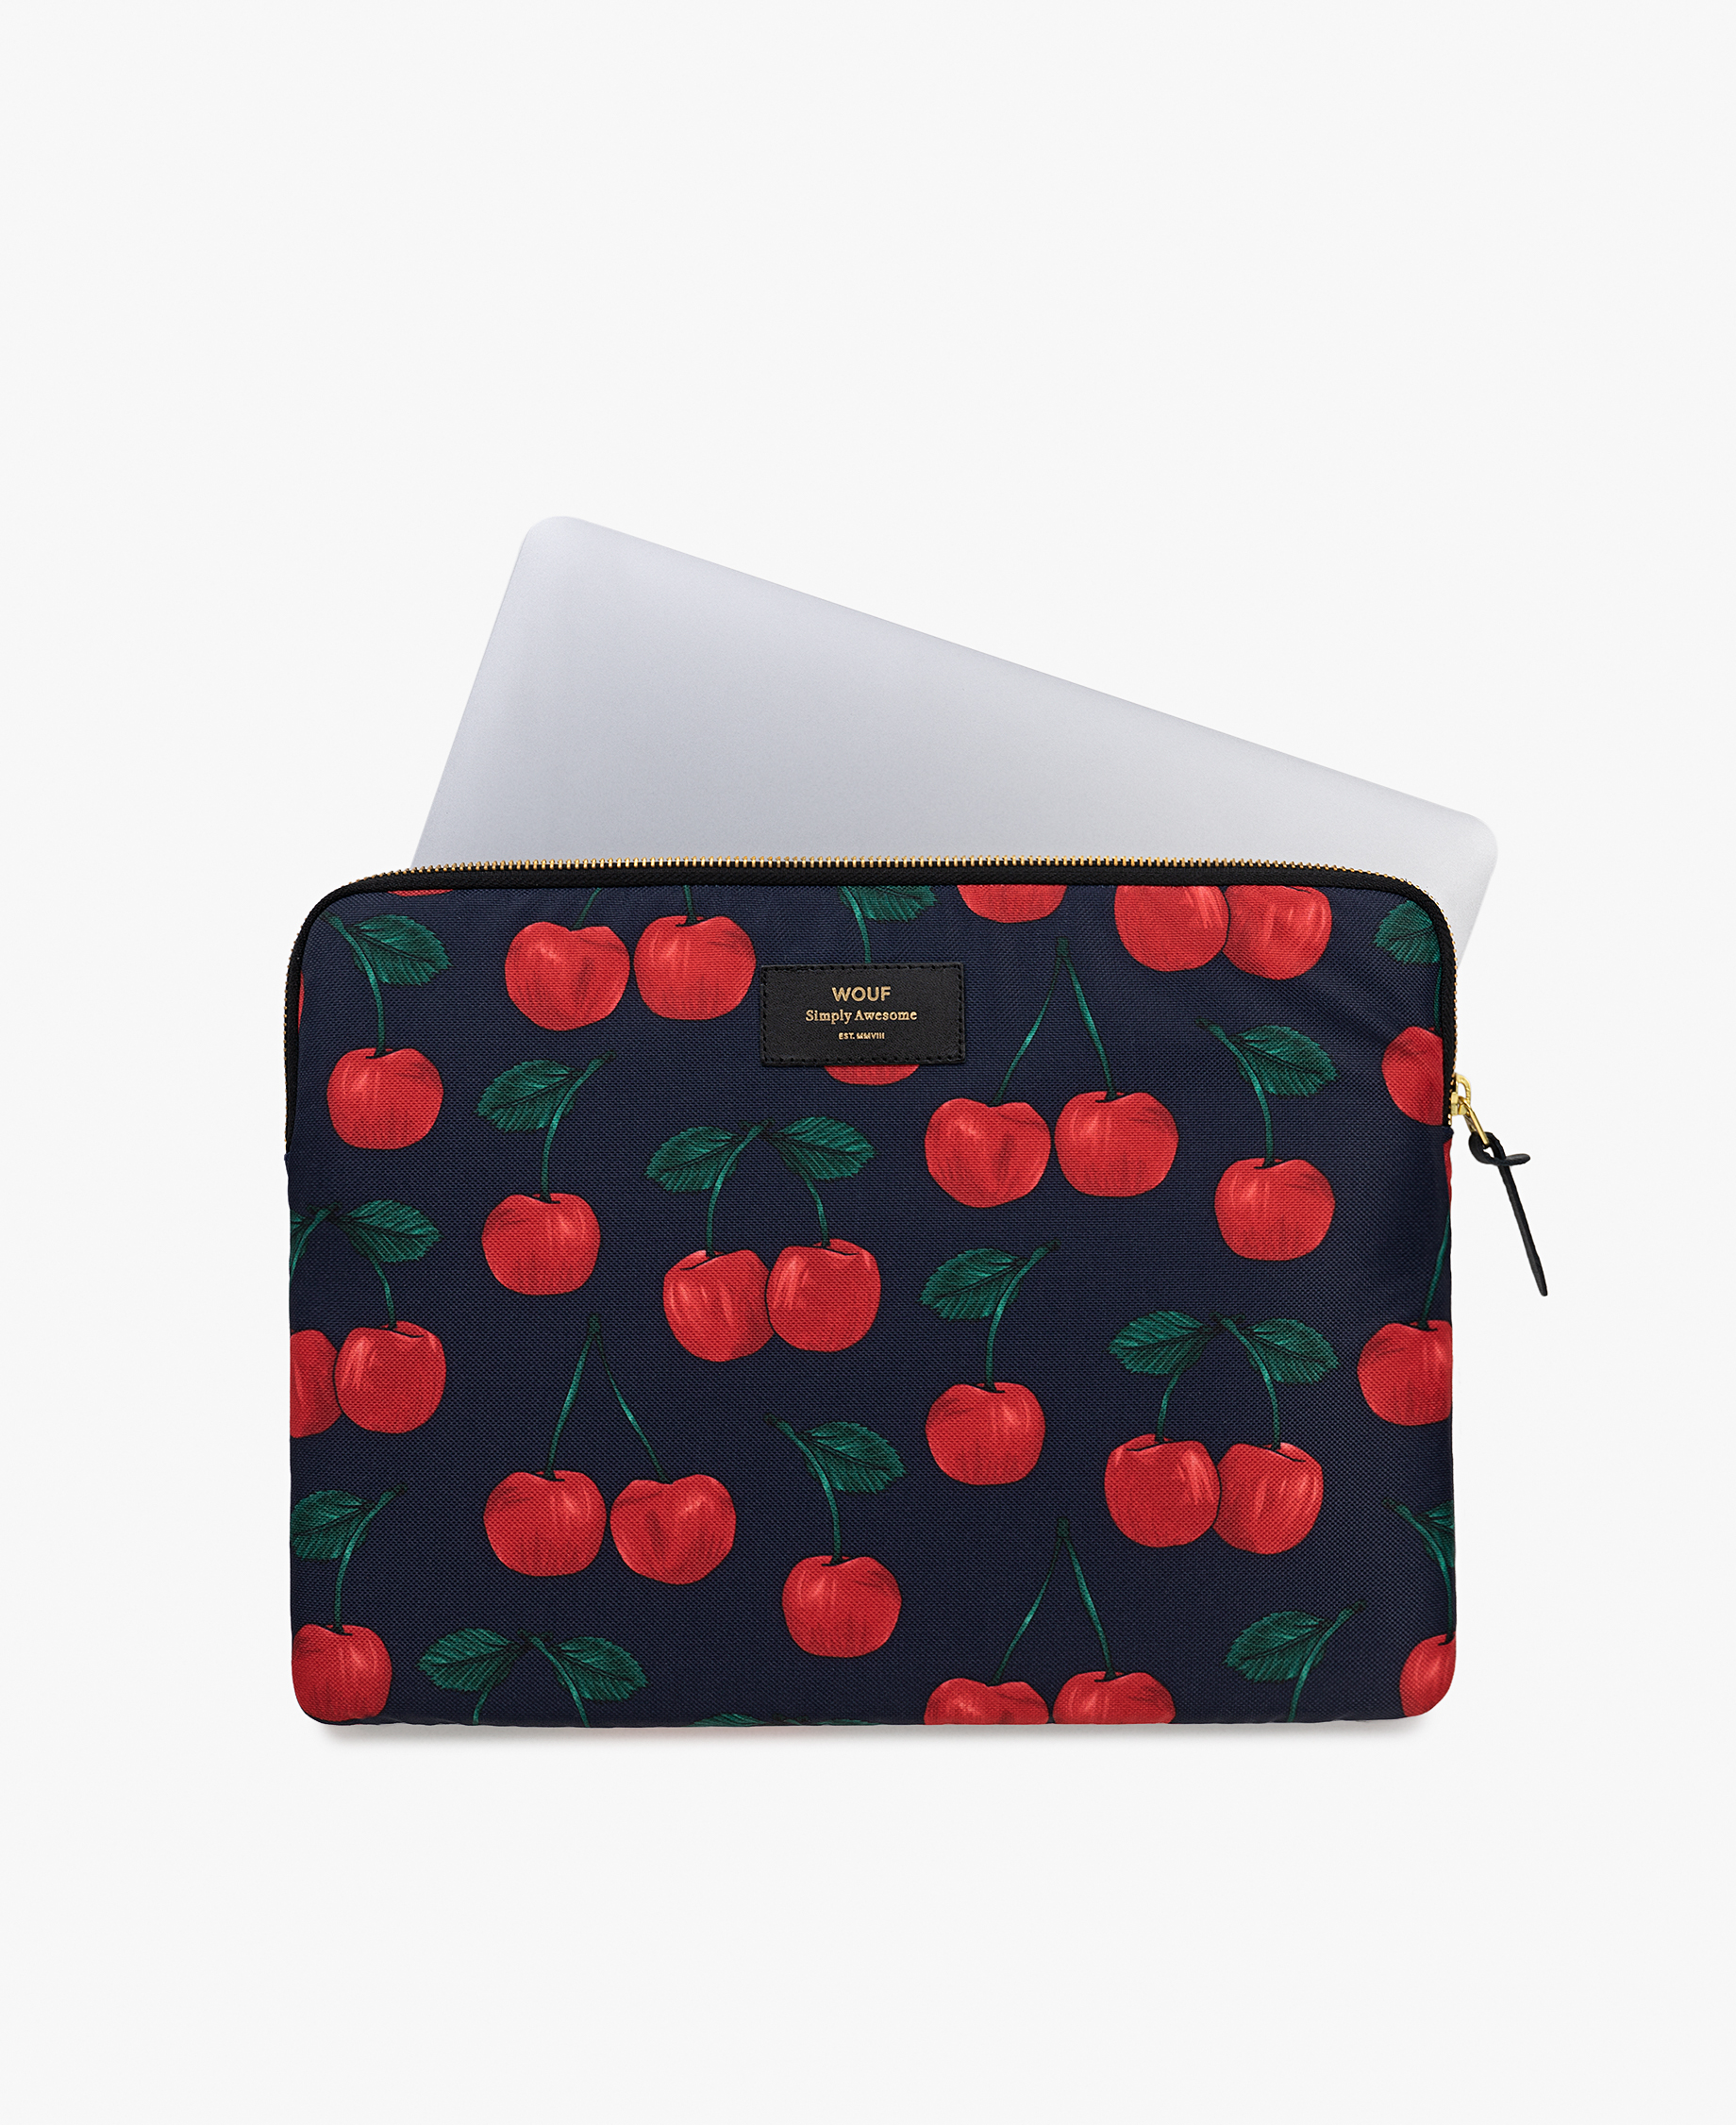 fruits design laptop cover